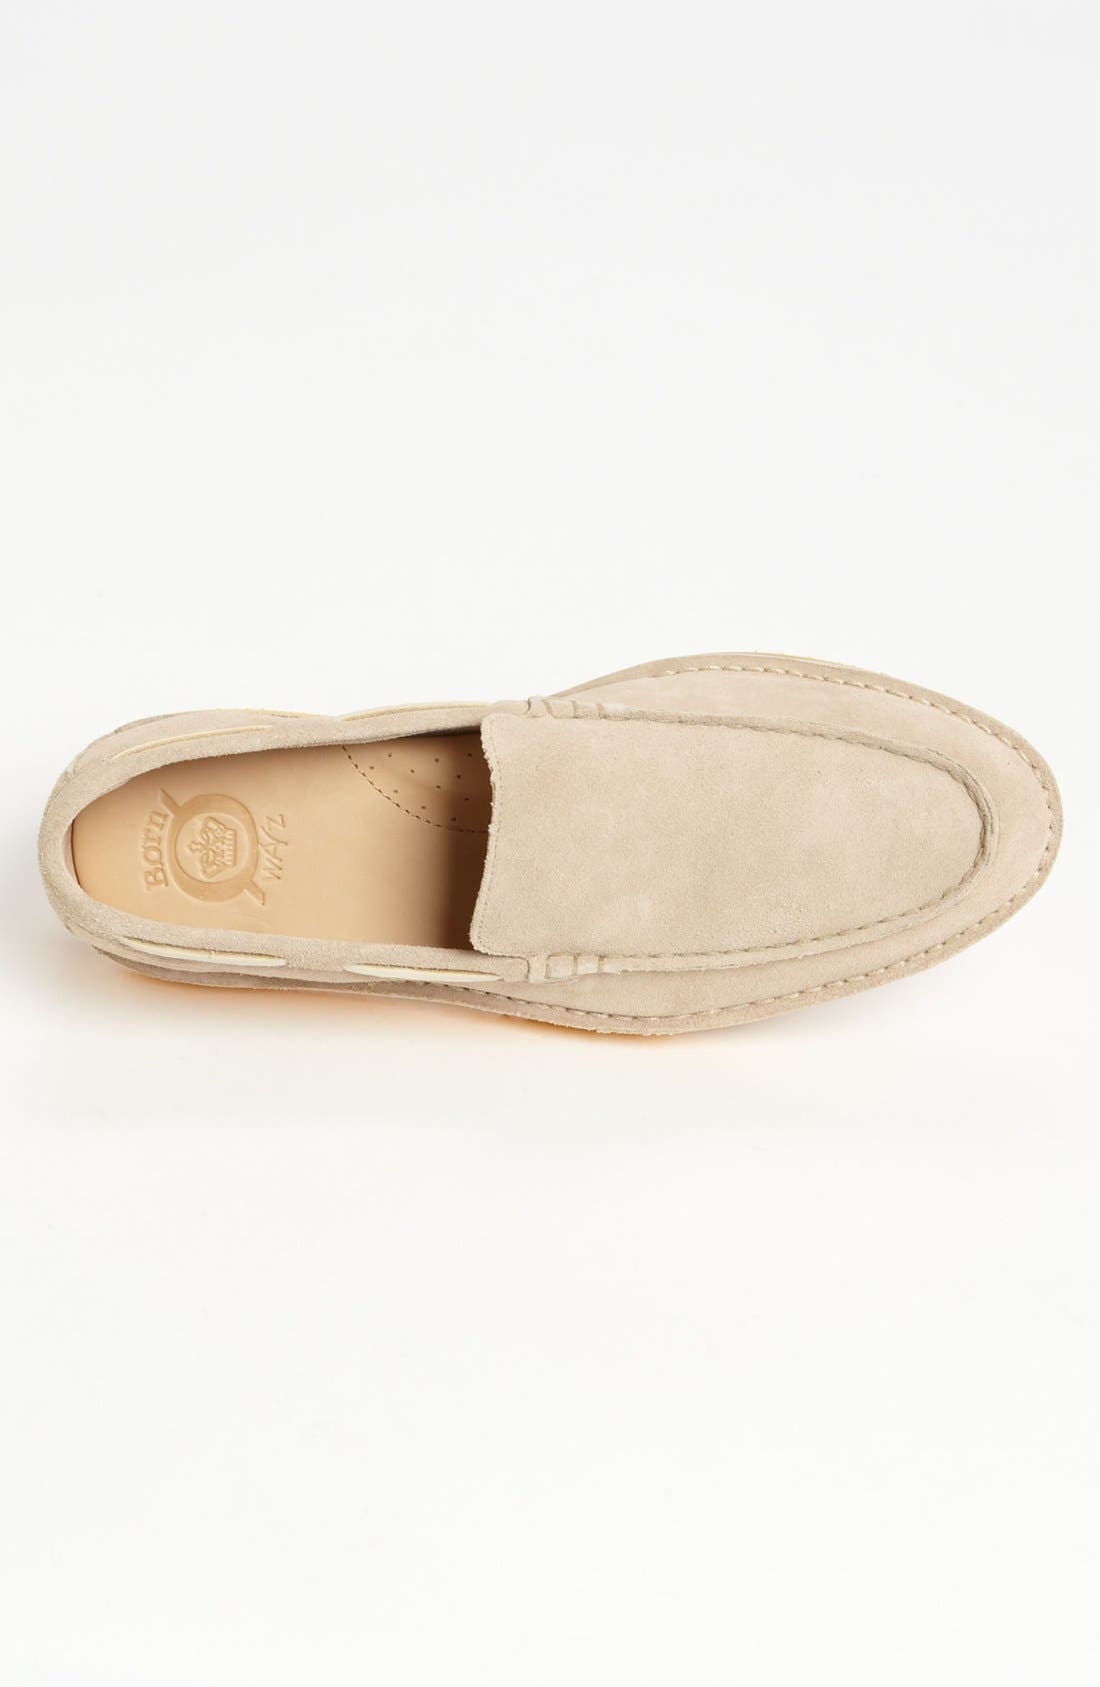 Alternate Image 3  - Børn 'Zander' Venetian Loafer (Men)